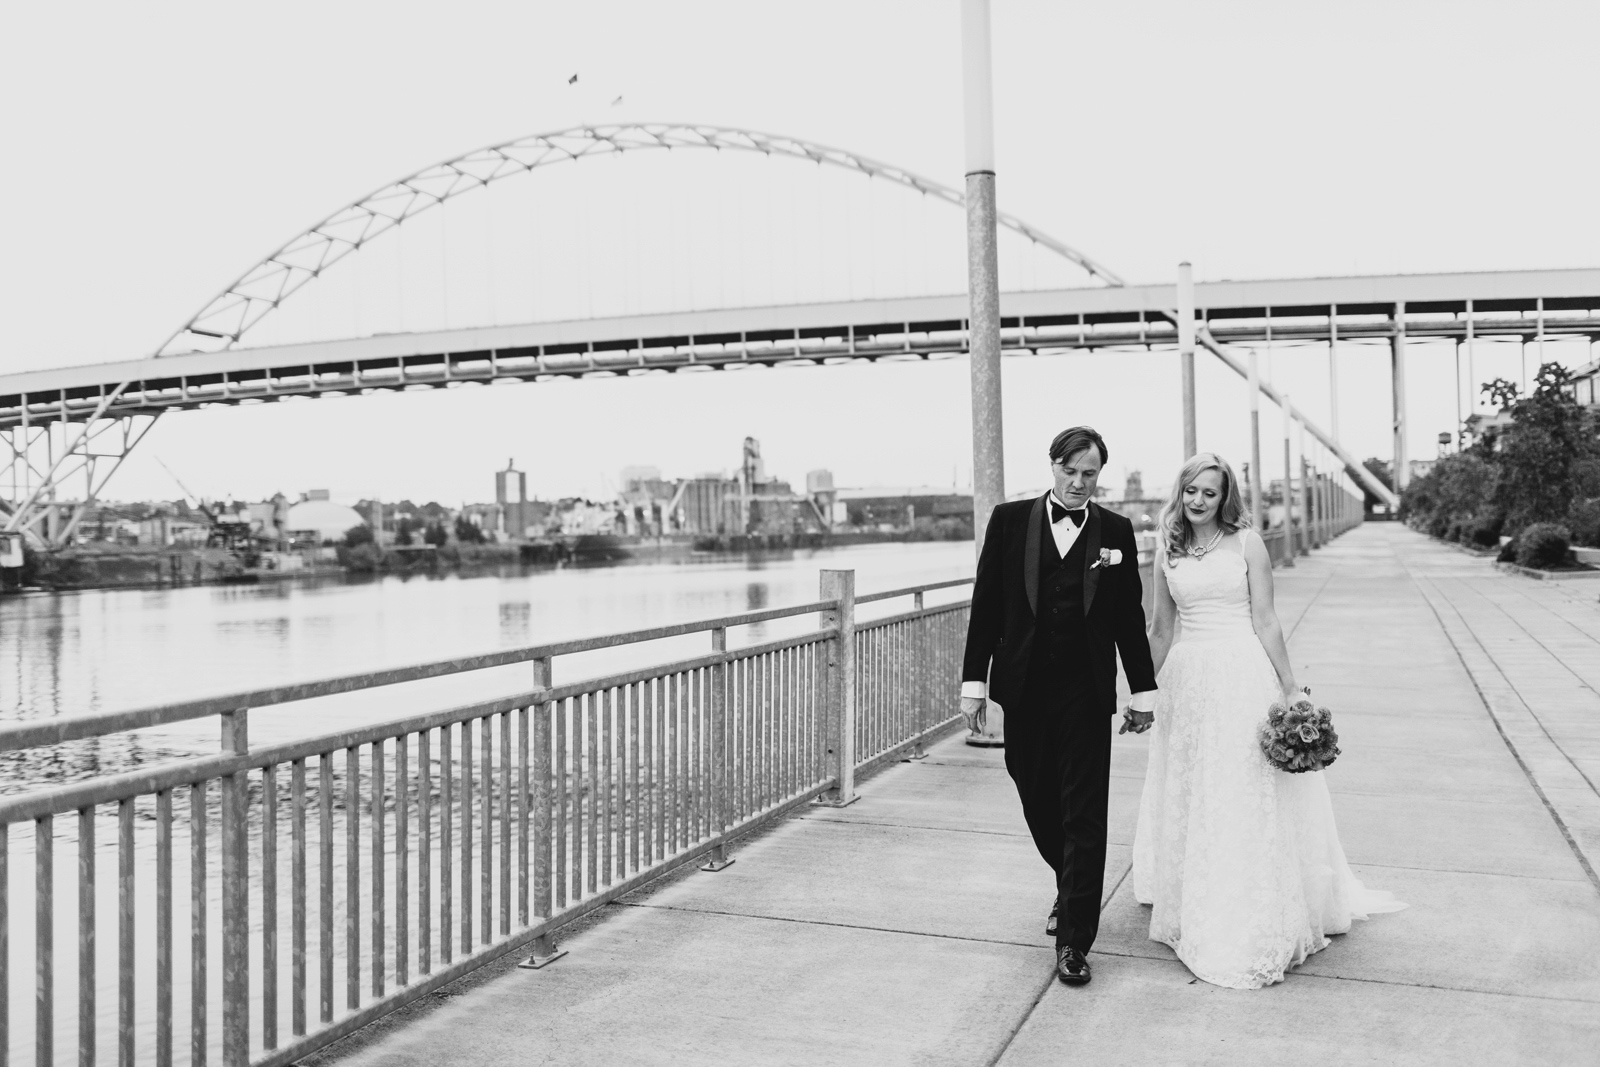 downtown Portland wedding venue